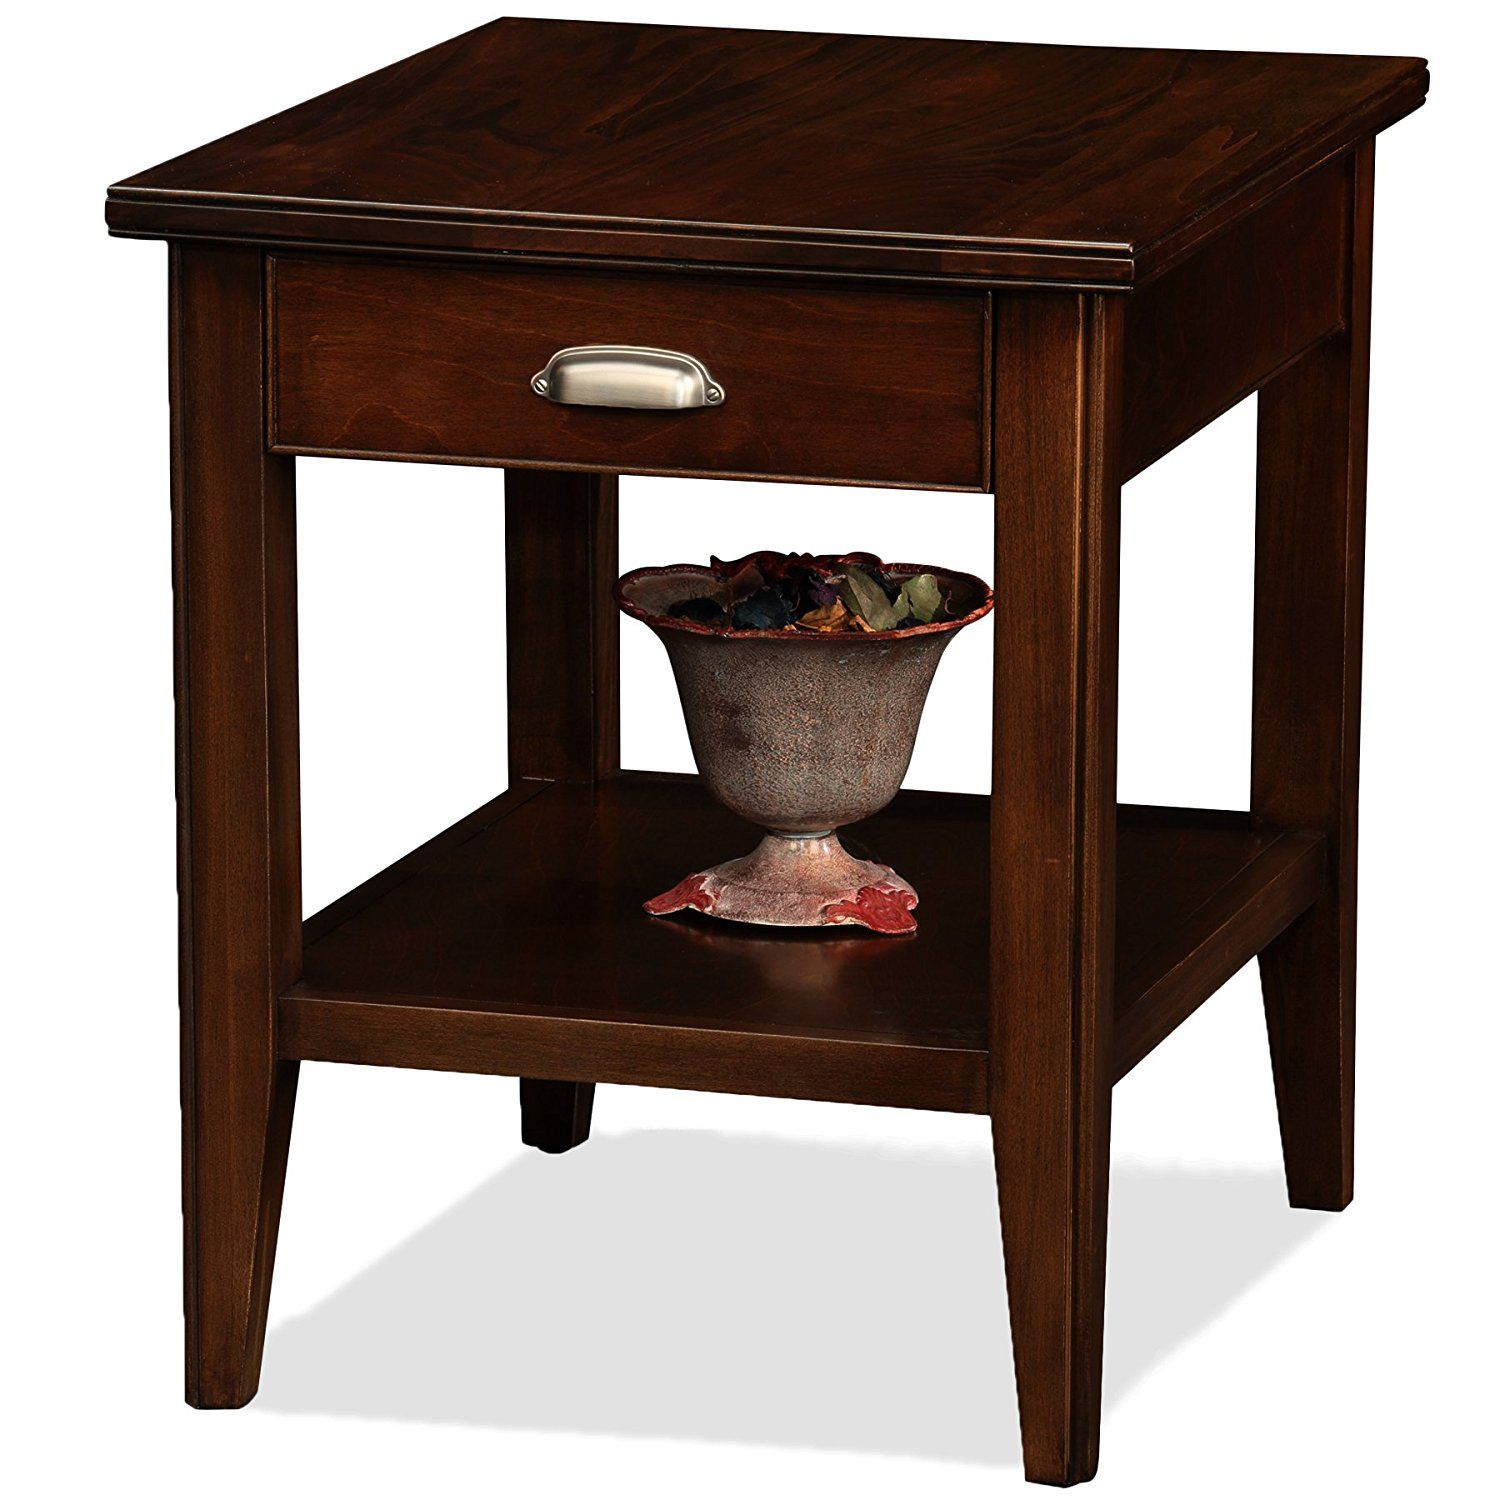 farmhouse table the super real mainstays nightstand end dark brown set inch wide tall nightstands home phone stand for desk recliner chair mercury row comforter tables houston